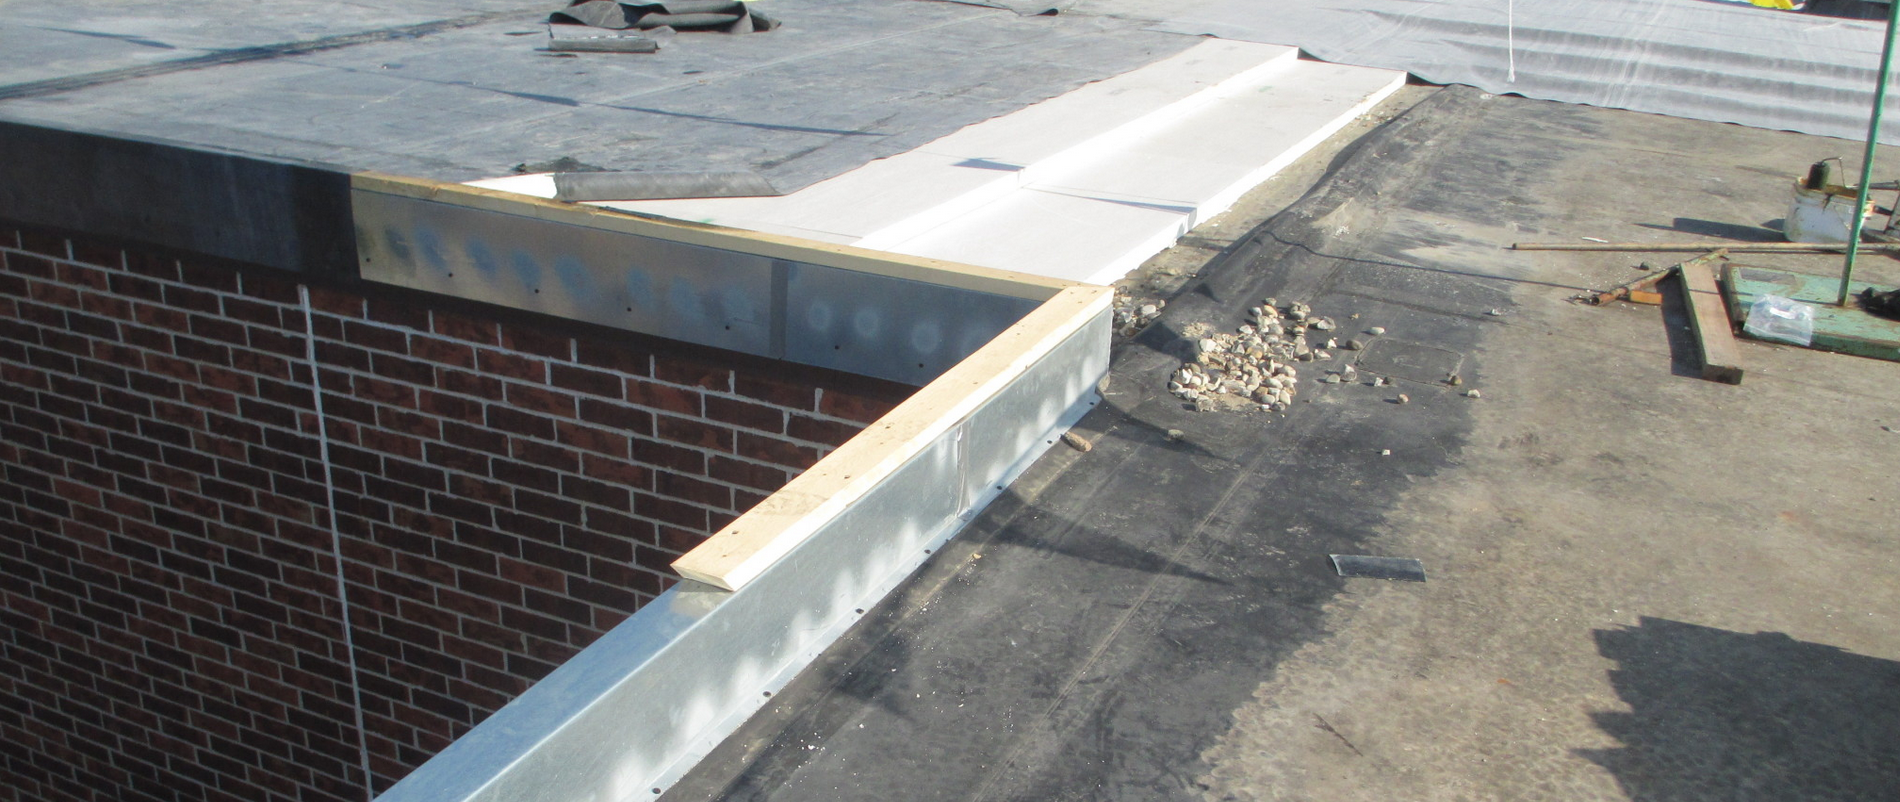 roof edge, prefabricated roof curb